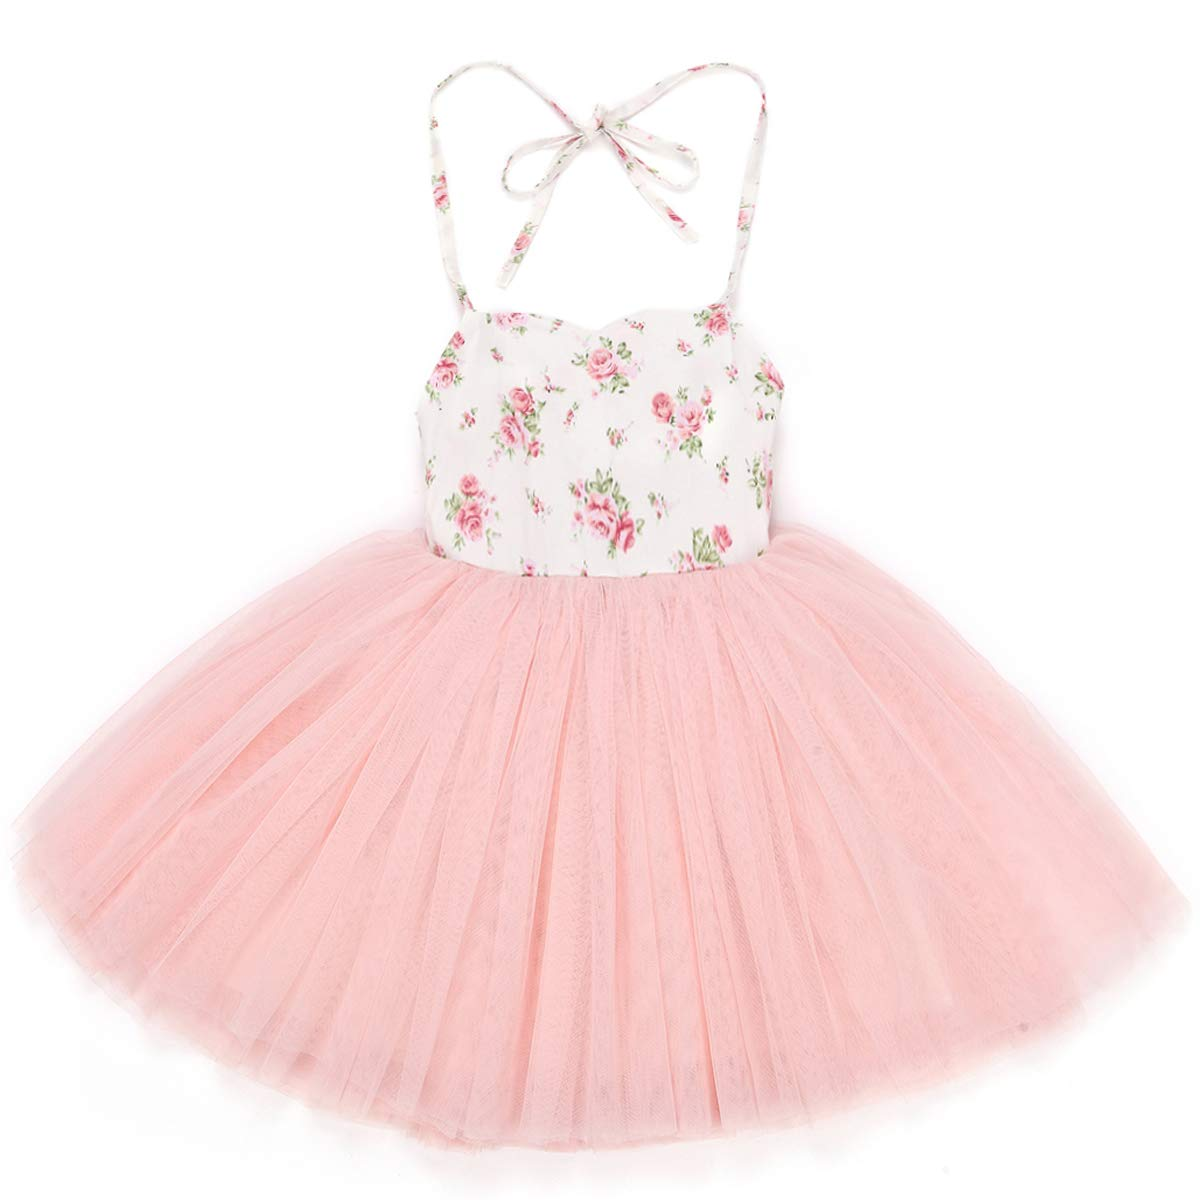 1a98970cf9198 Flofallzique Special Occasion Girls Dress Pink Tutu Wedding Christening  Birthday Baby Toddler Clothes